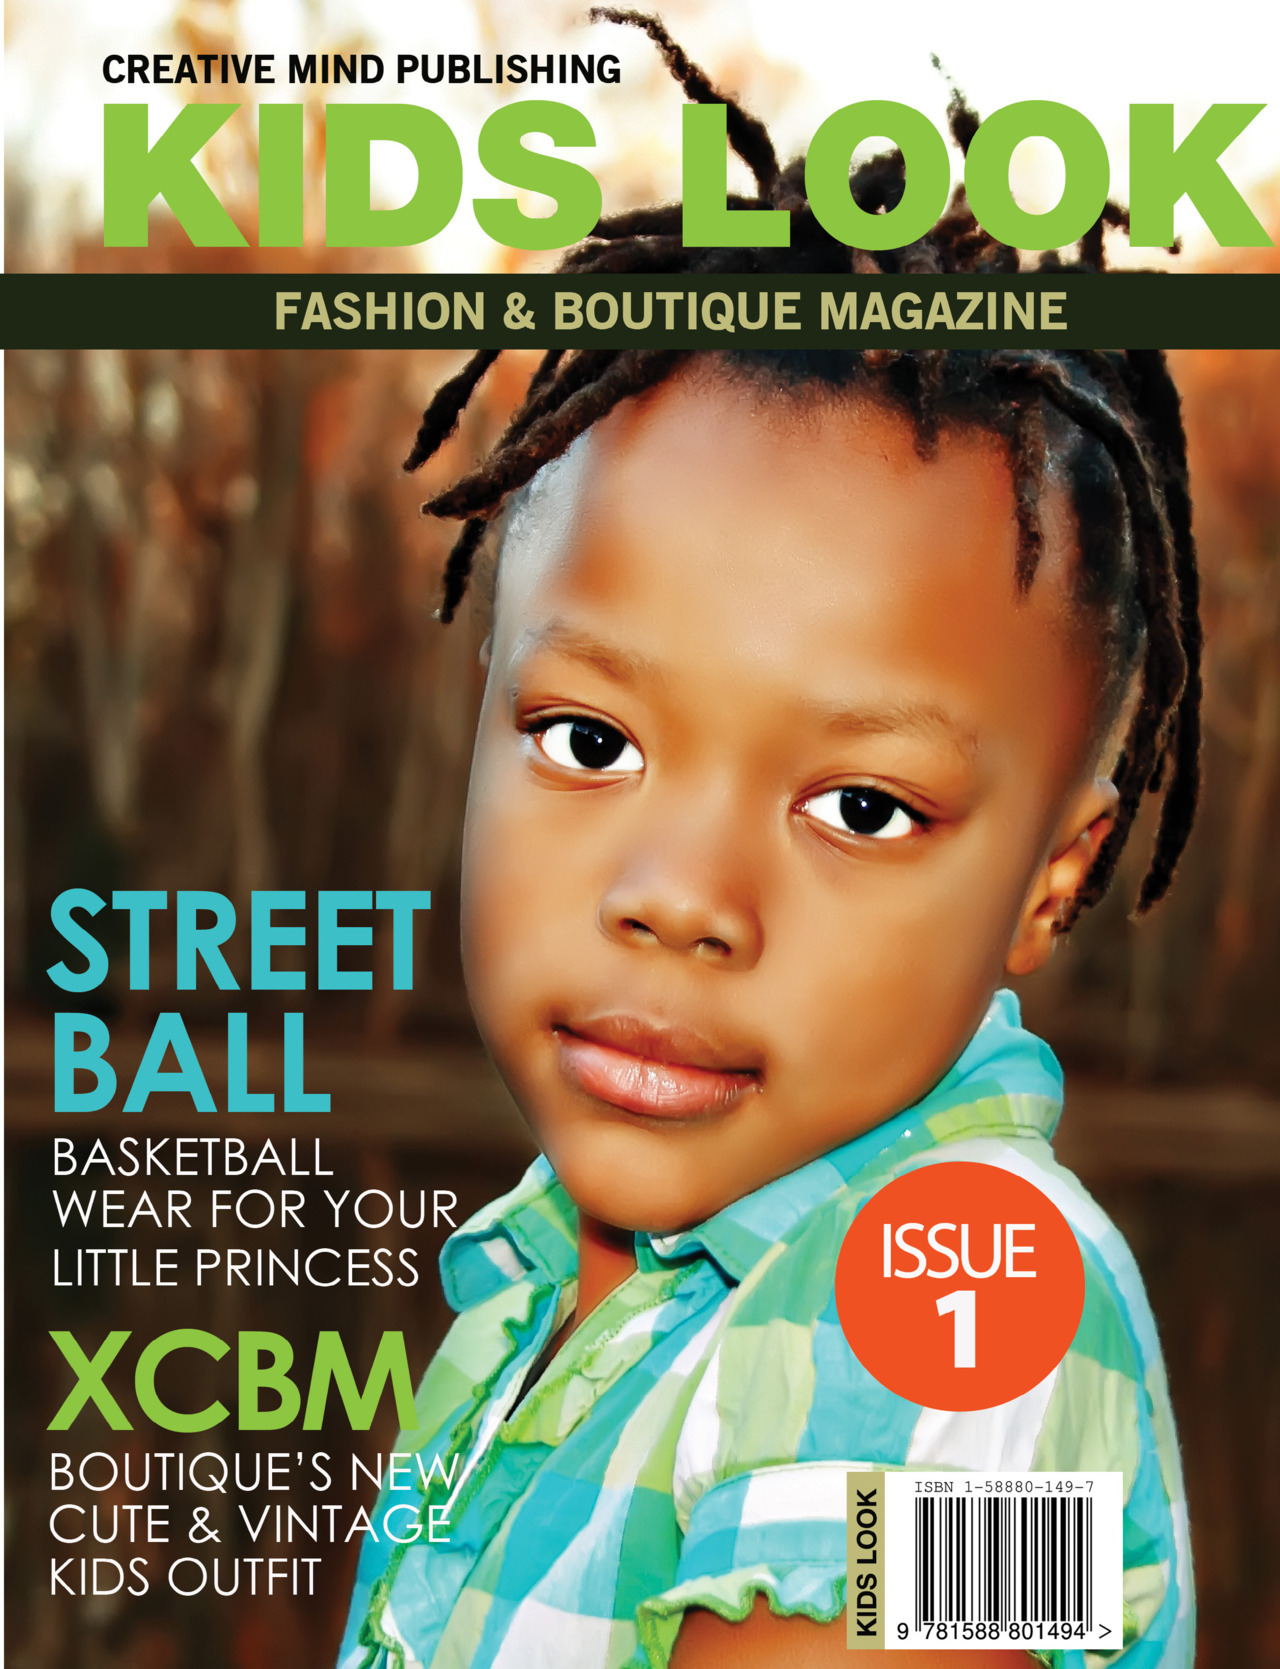 Model: Elajah Makeup/Hair: Amy Winfield Issue: KDL (Kids Look Magazine) Issue 1 Photographer: Renaldo Creative www.renaldocreative.com  Kids Look Issue 1 Model: Lajah H Photographer: Renaldo Creative http://renaldocreative.com  Download Kids Look Free: http://issuu.com/kidslookmag/docs/kids_look_1 Support Kids Look Buy Print: http://www.magcloud.com/browse/issue/345601